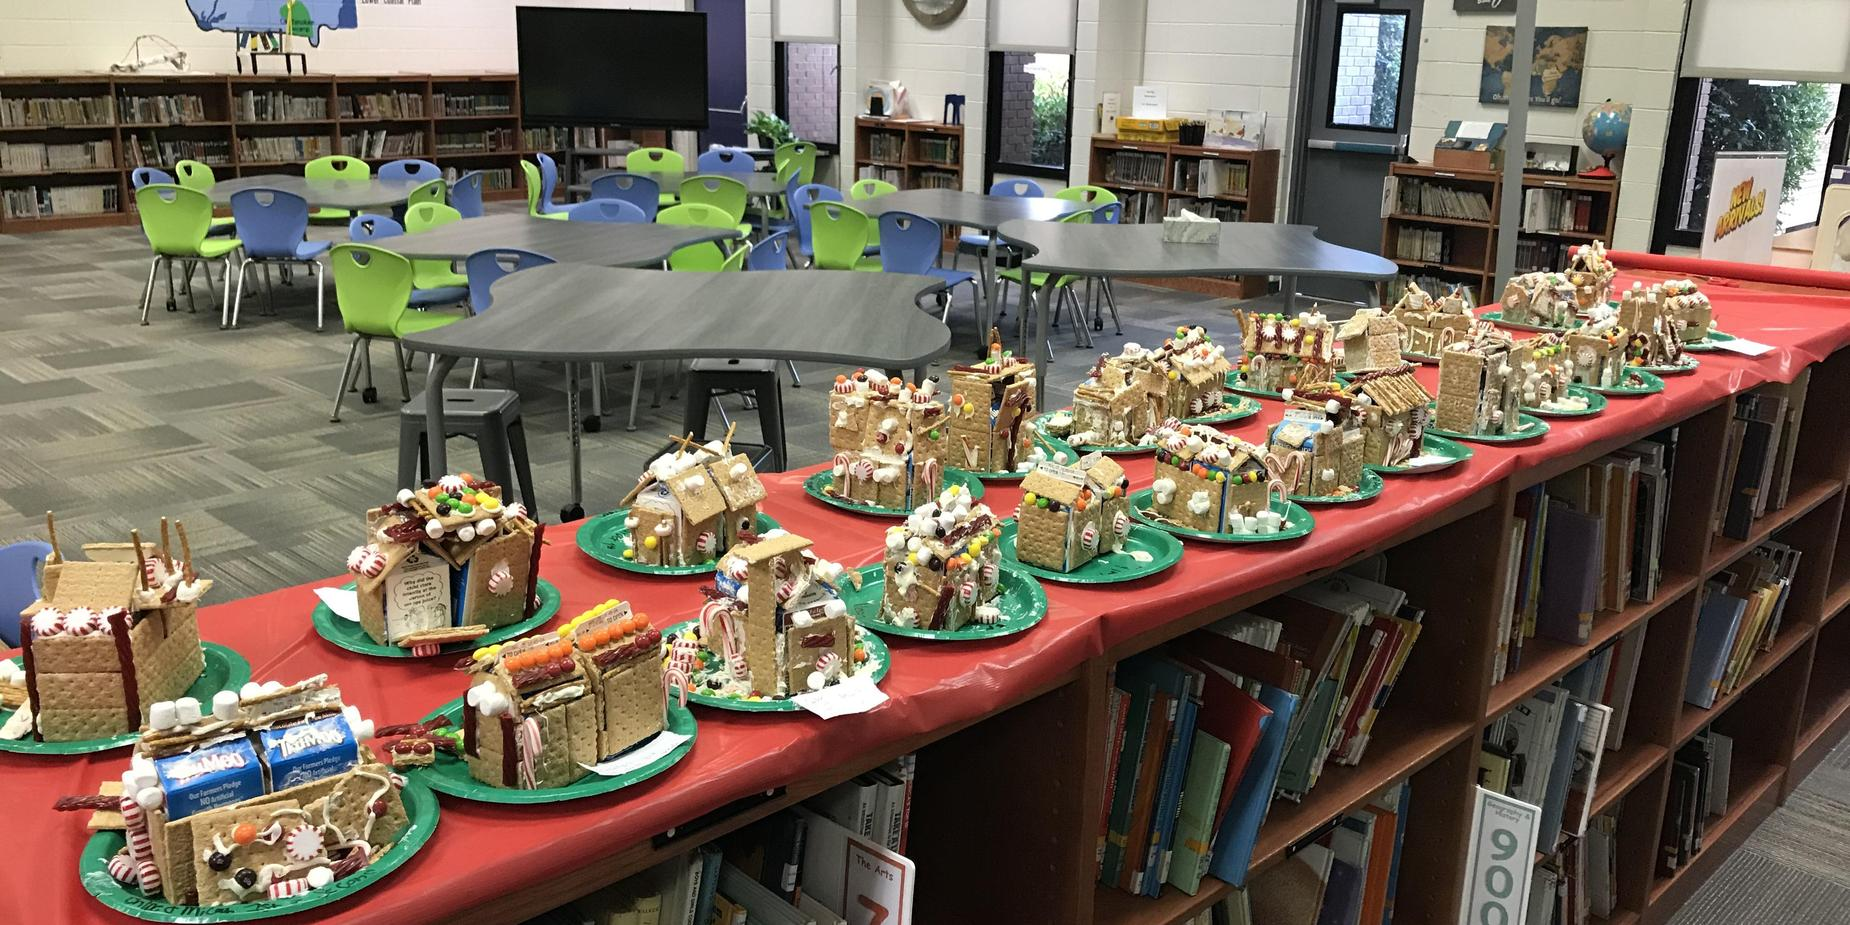 Gingerbread Houses made during the Jingle Mingle!